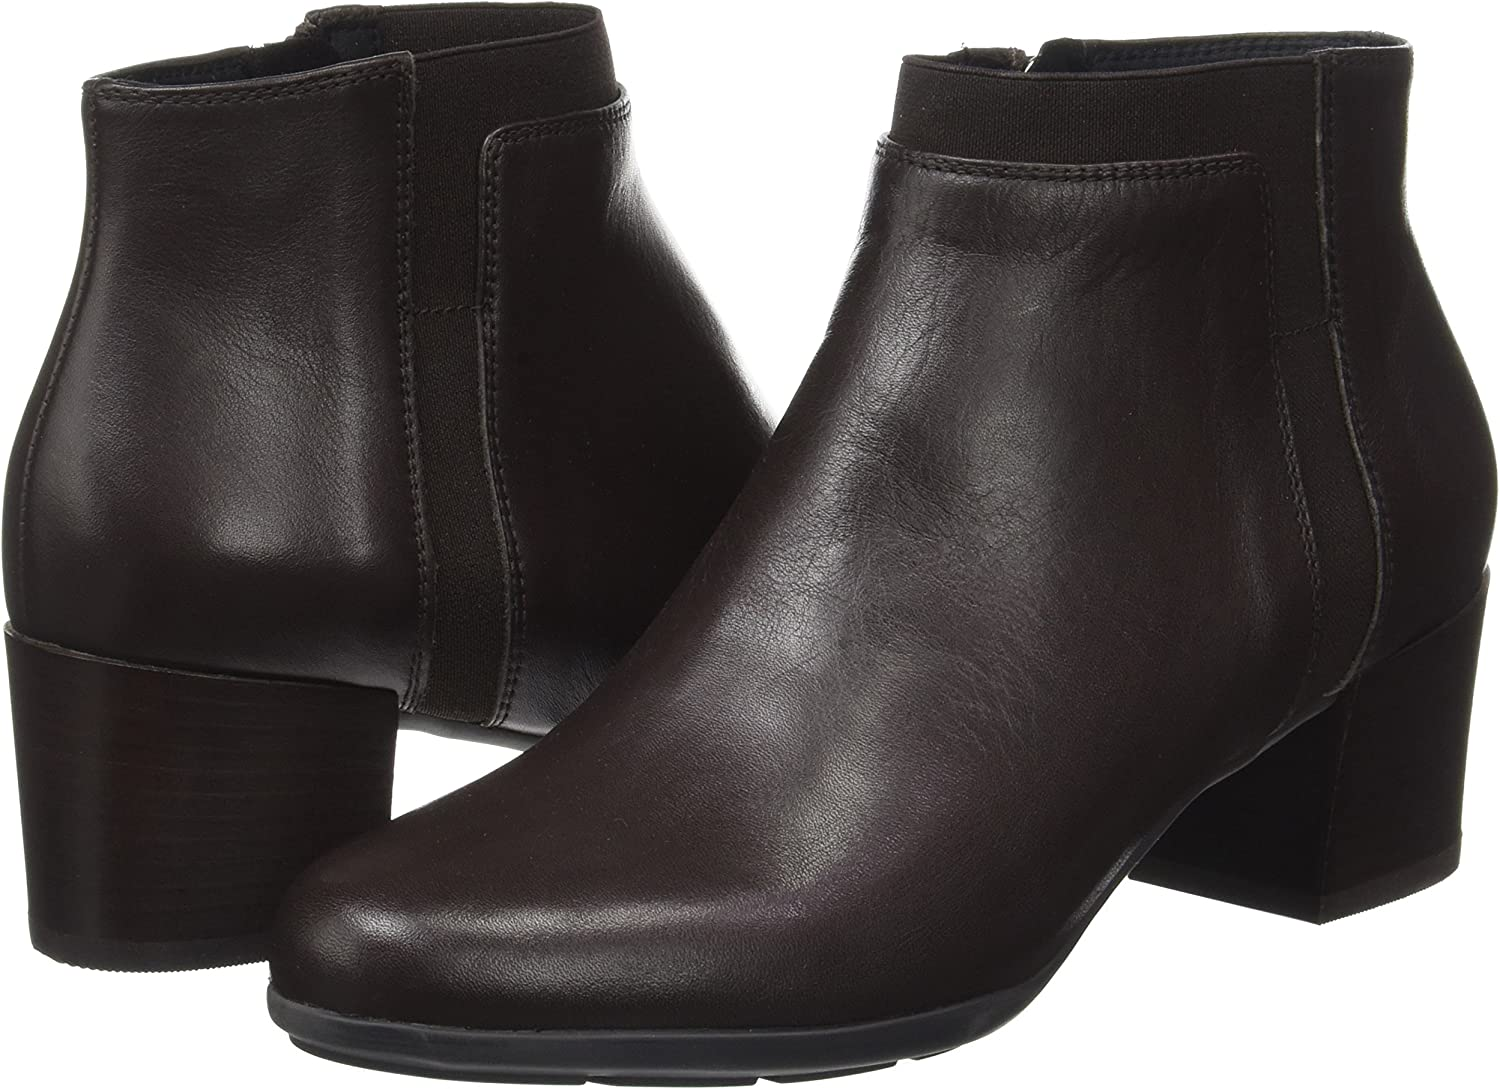 Geox Women's Annya Mid 1 Ankle Bootie